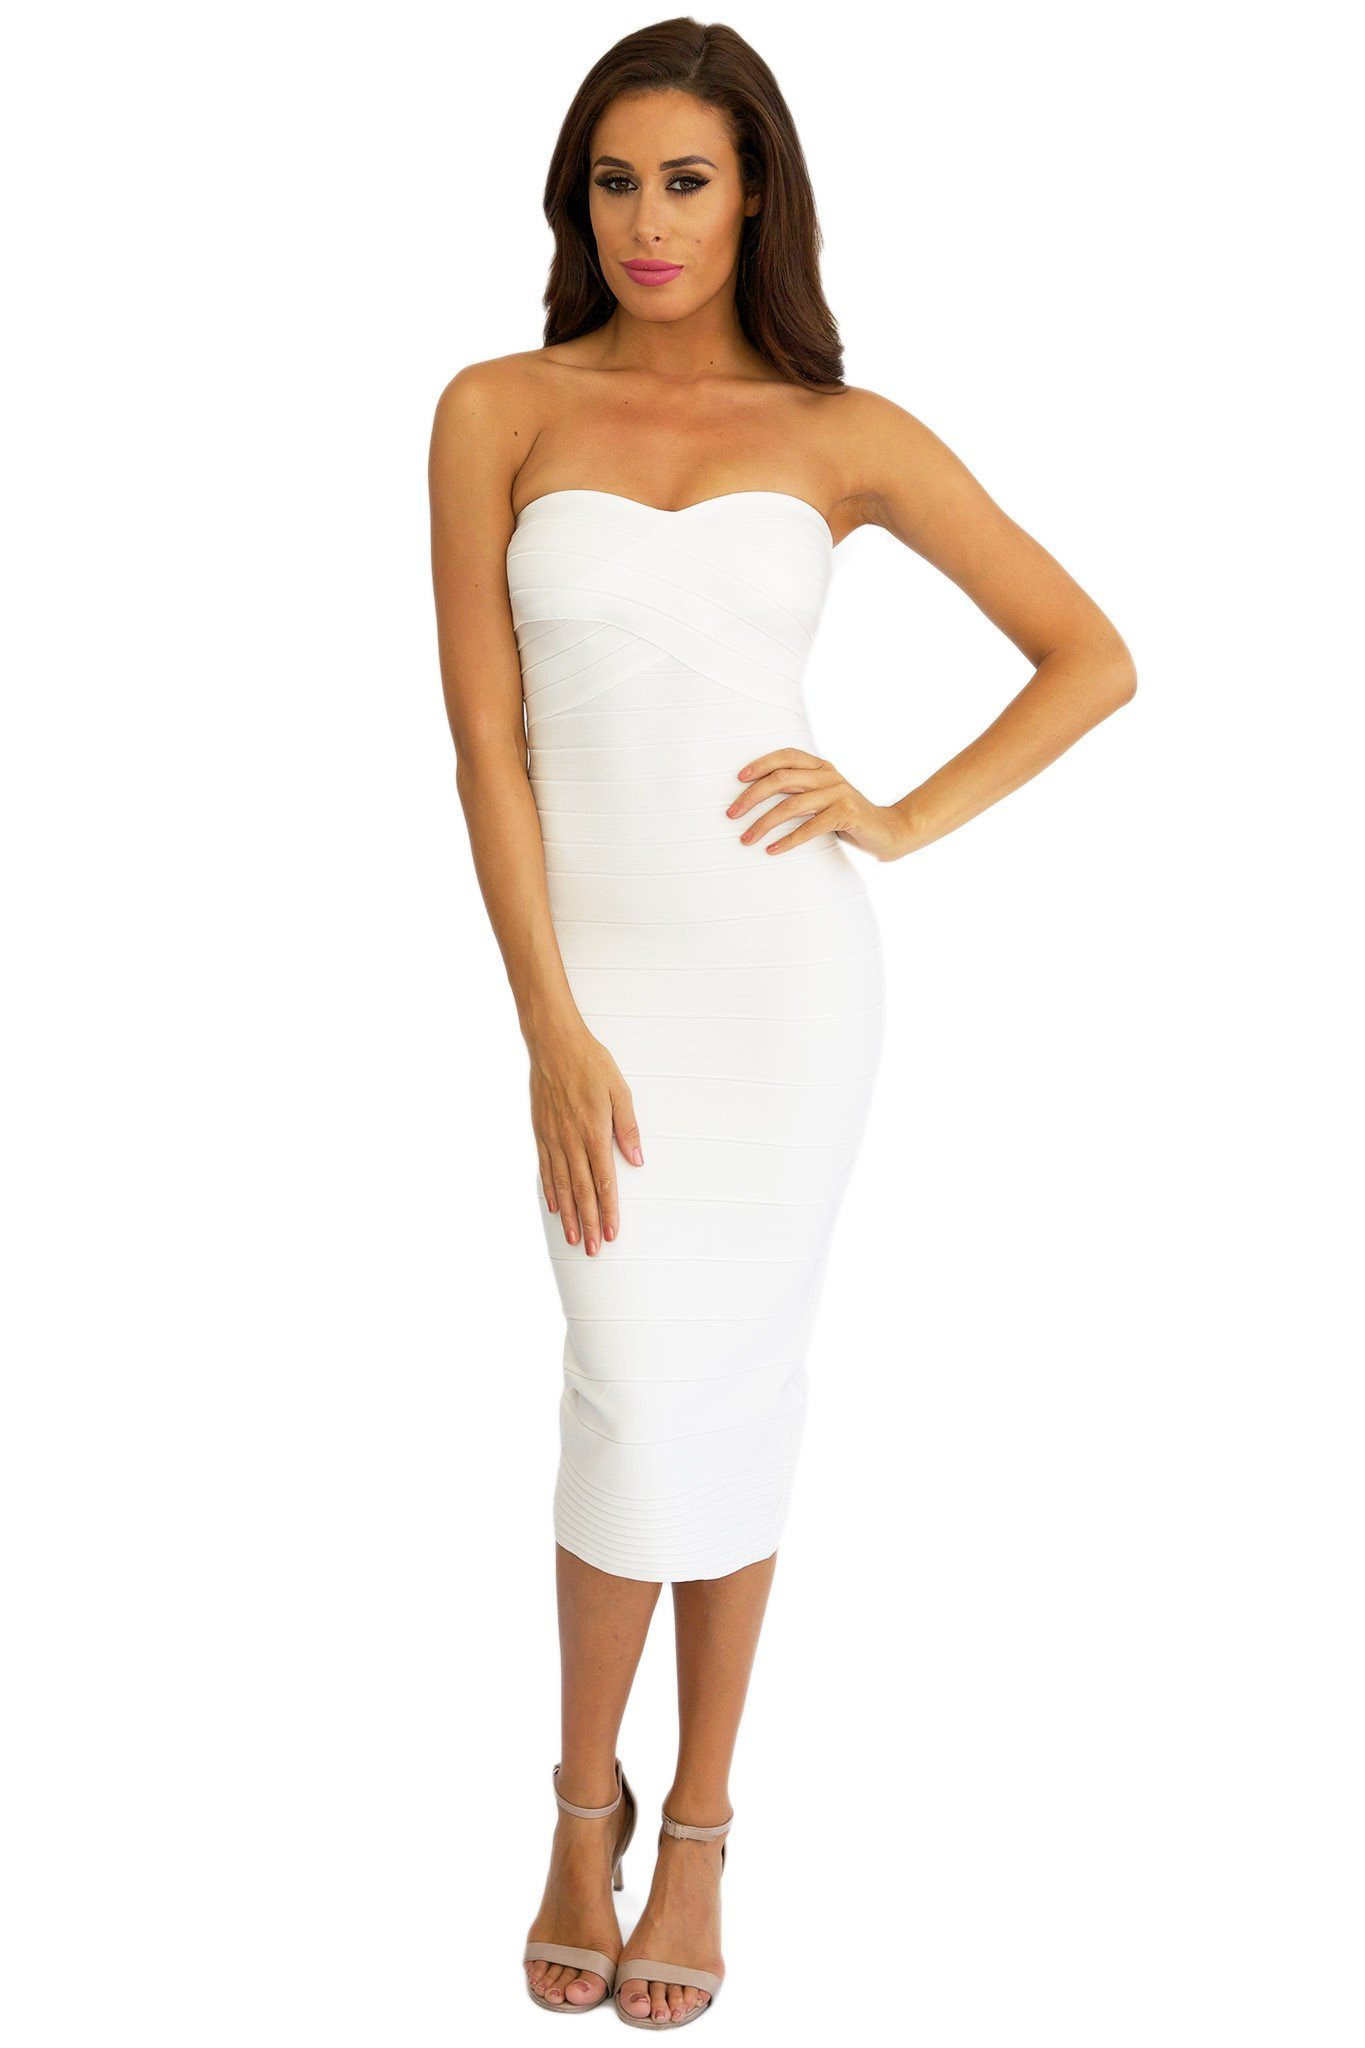 White below knee length strapless form fitted bandage dress subtle sweetheart neckline